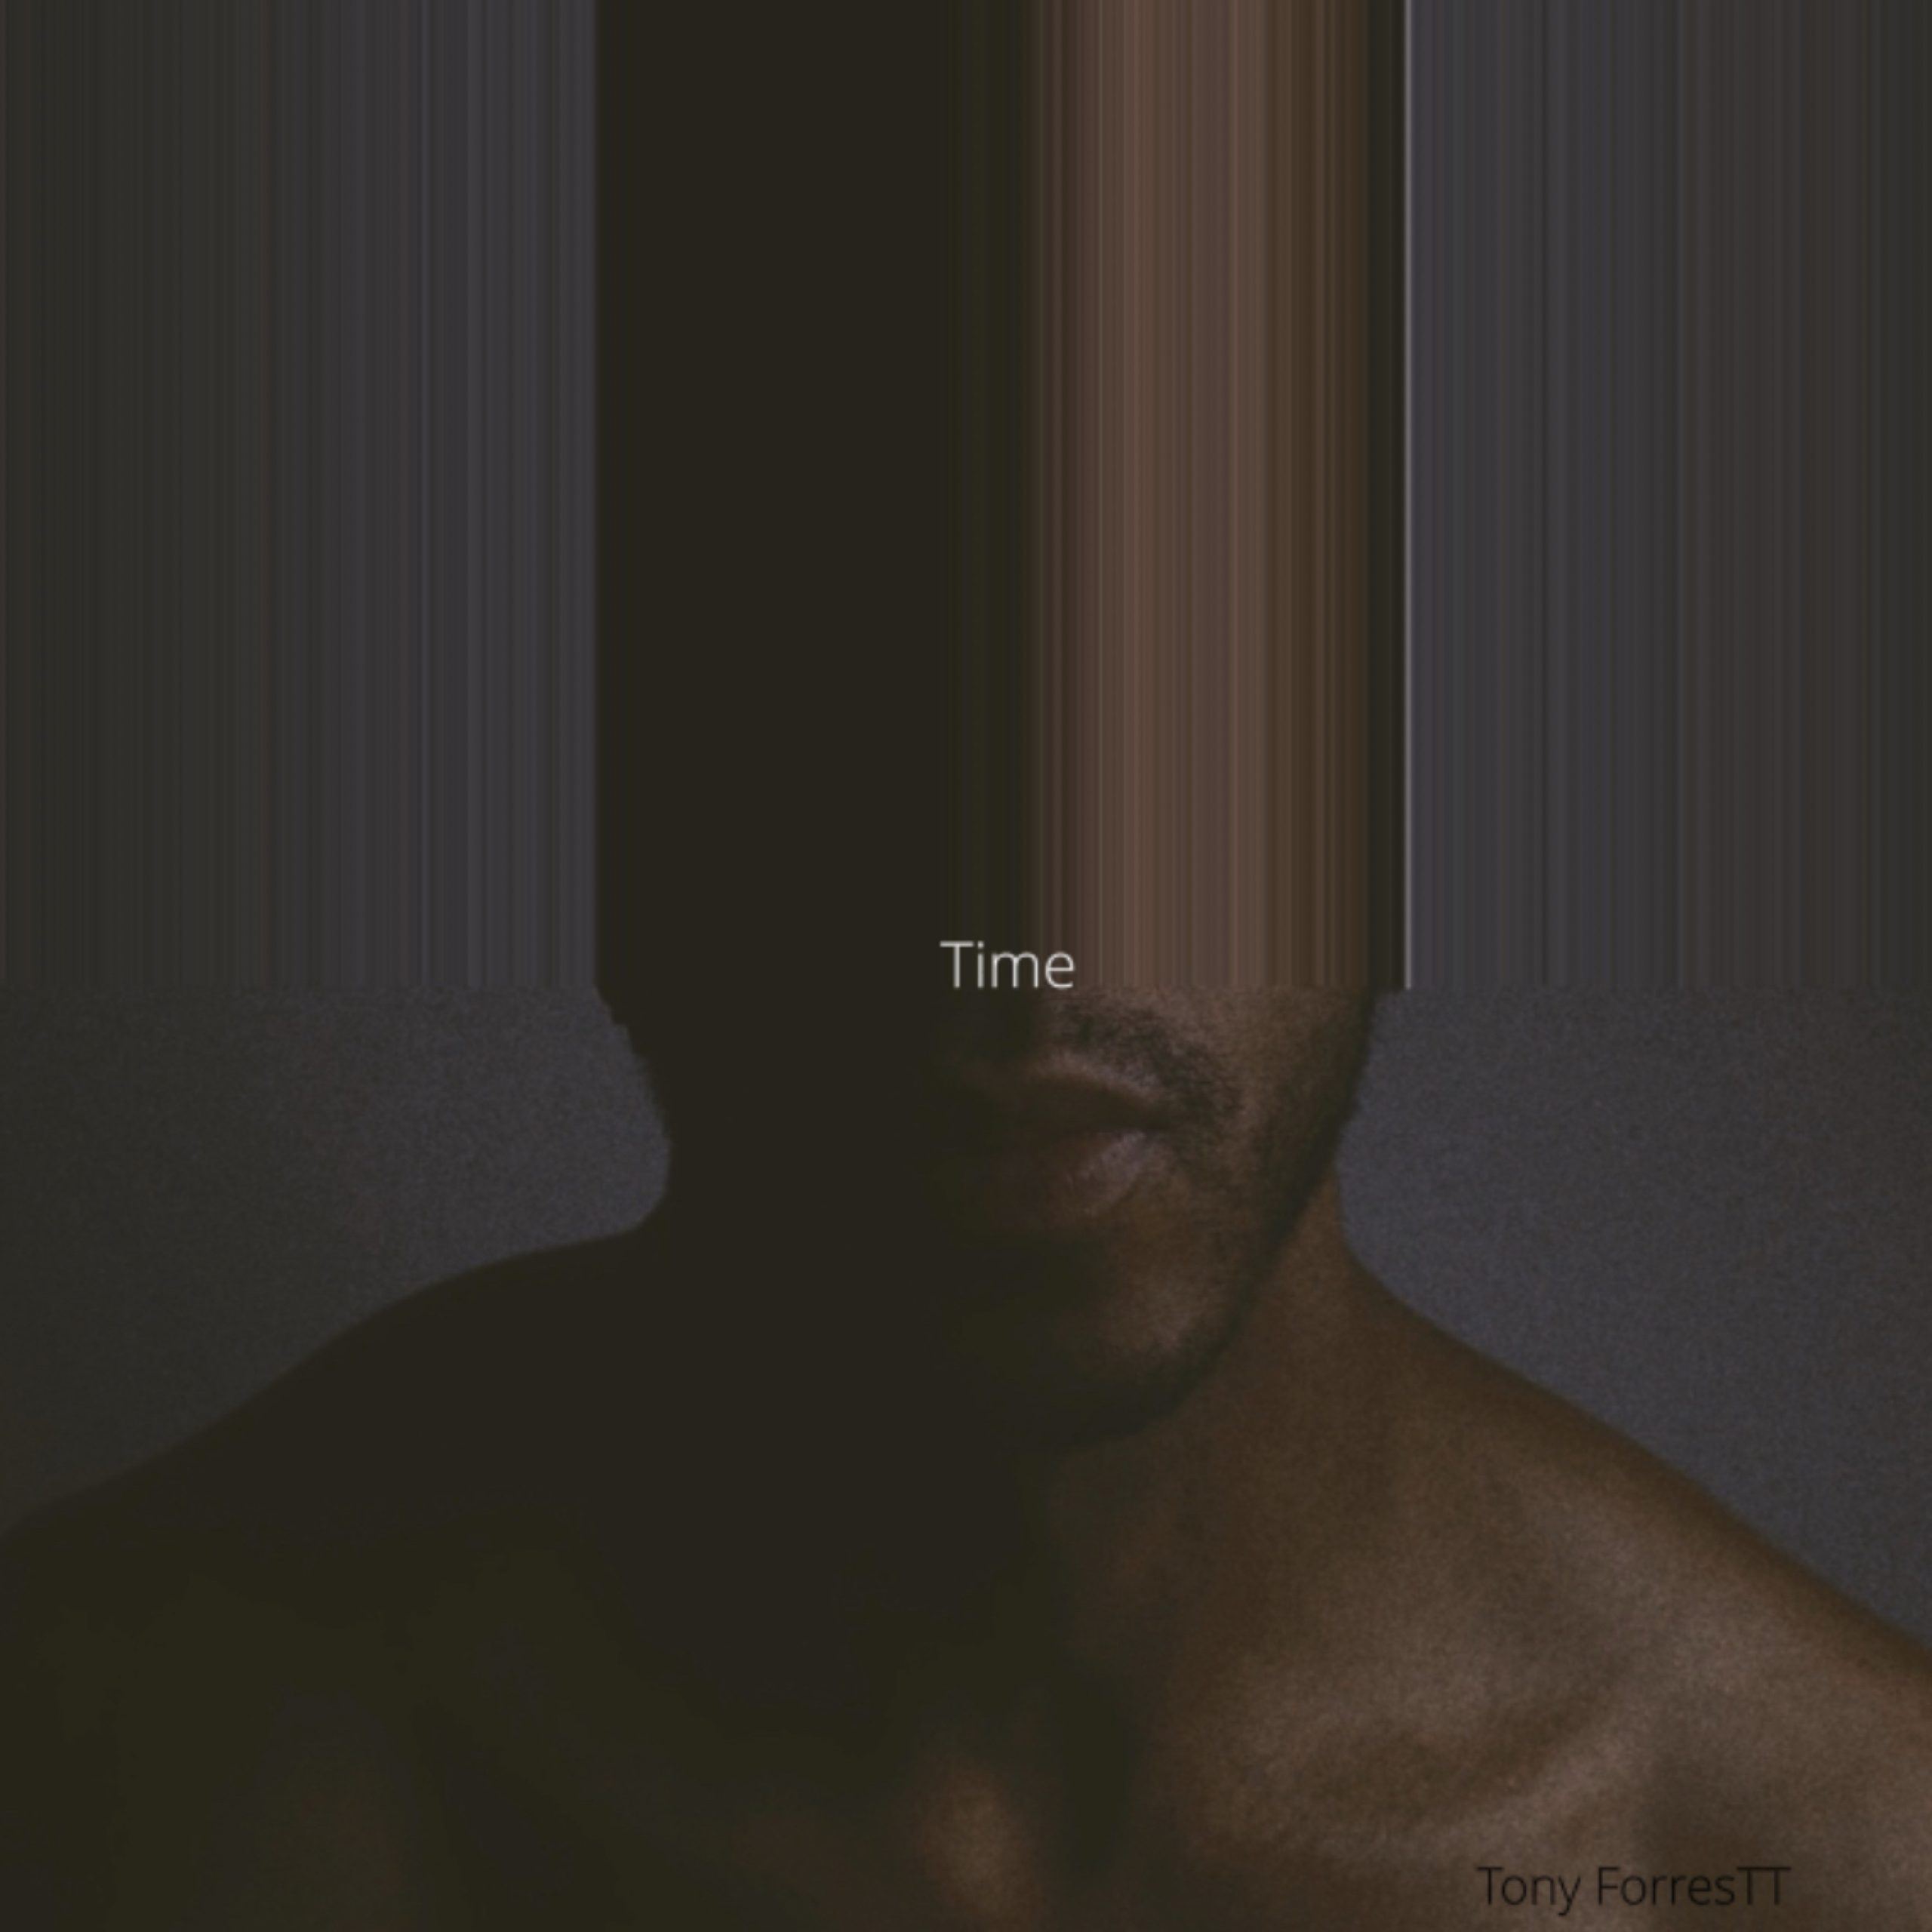 """Tony ForresTT has the """"TIME"""" in his latest release."""